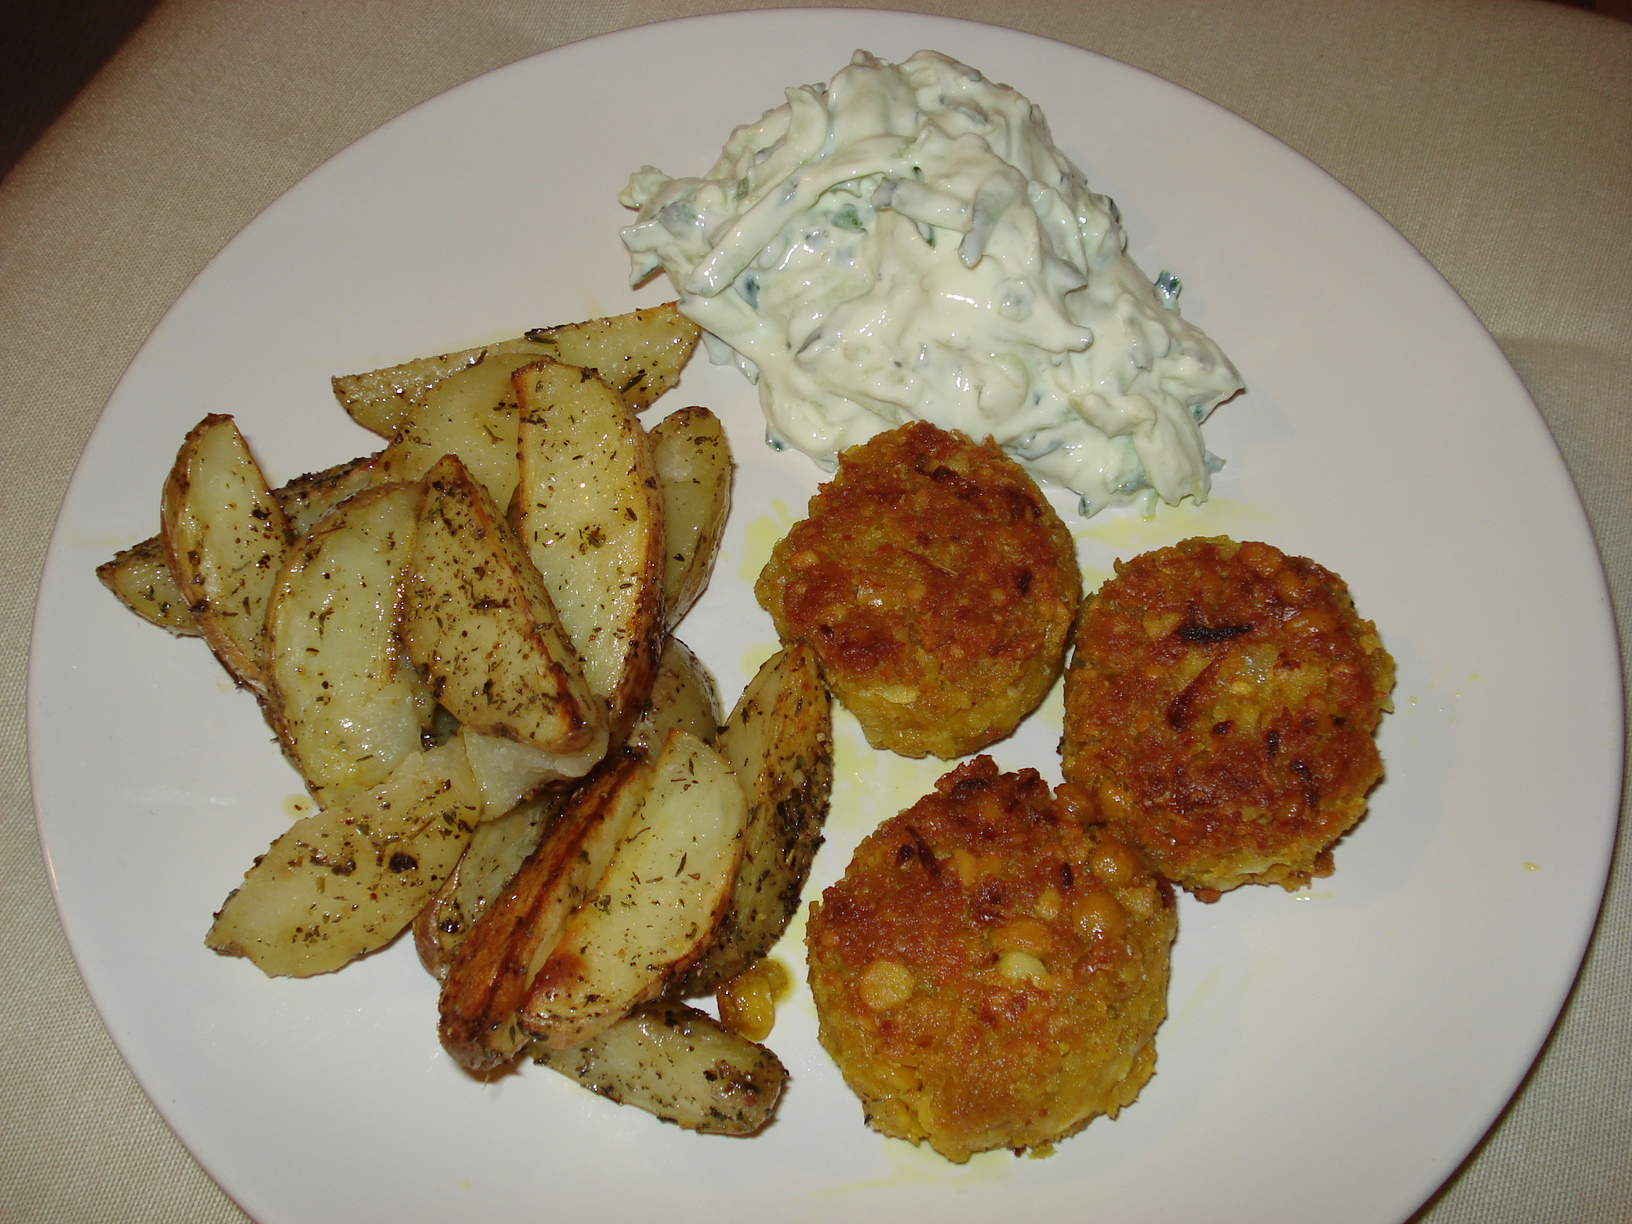 Curry chickpea patties with herbal potato wedges and tzatziki